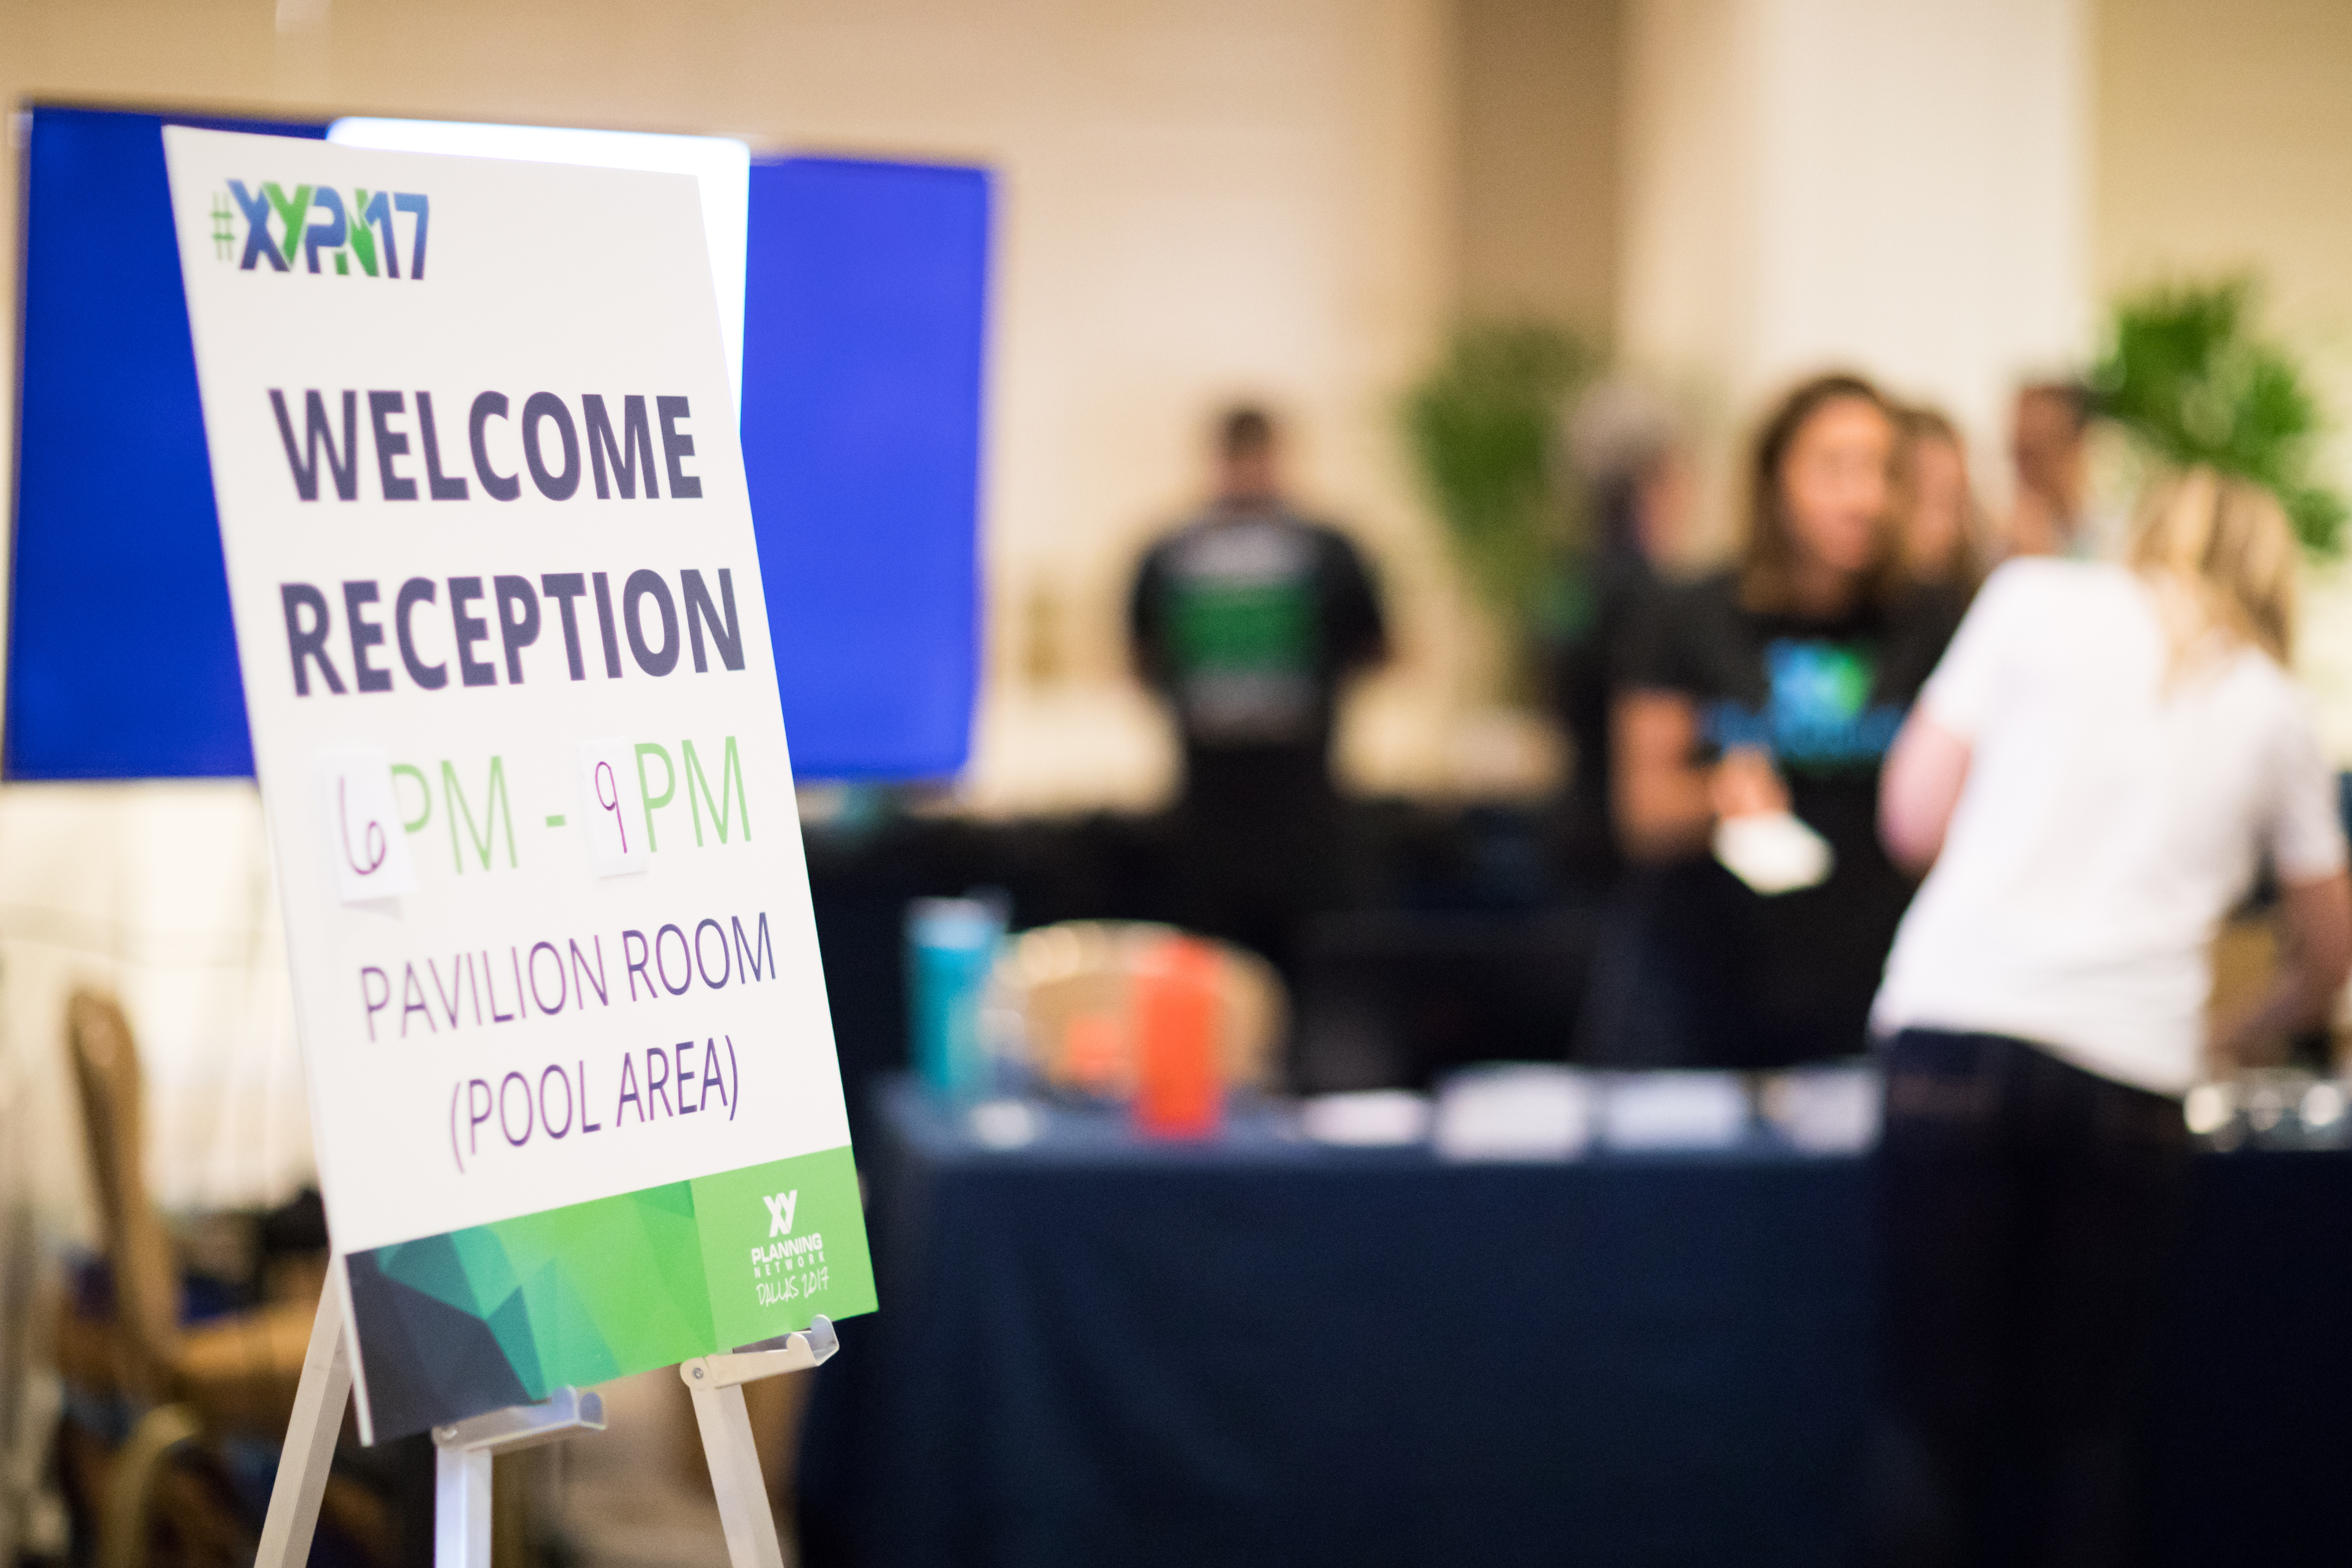 xypn17-welcome-reception-sign.jpg